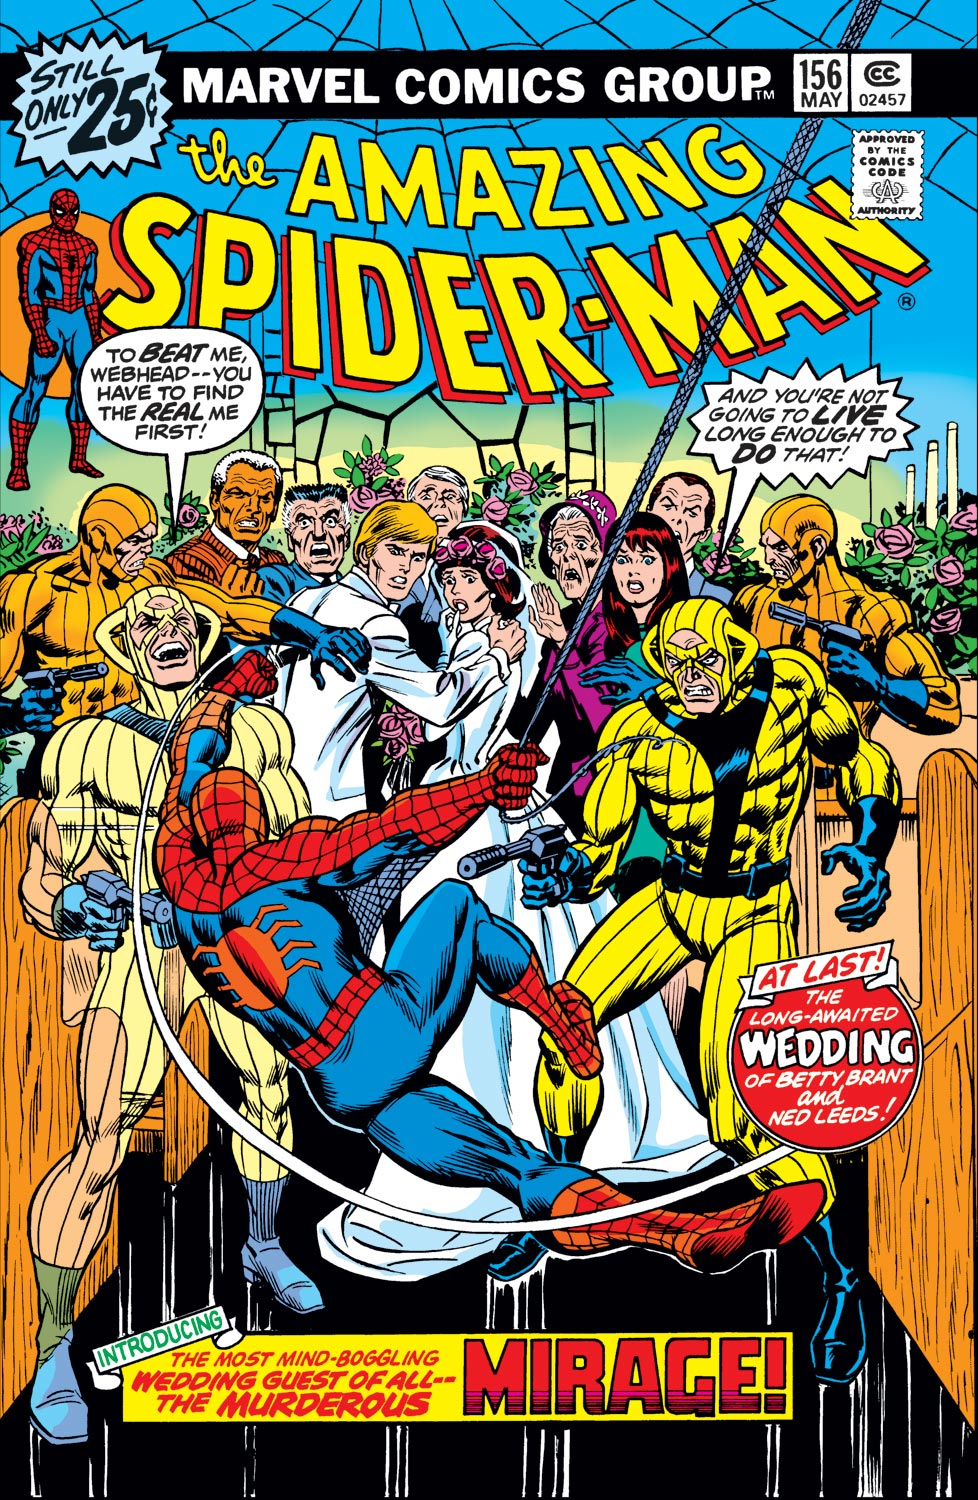 The Amazing Spider-Man (1963) #156